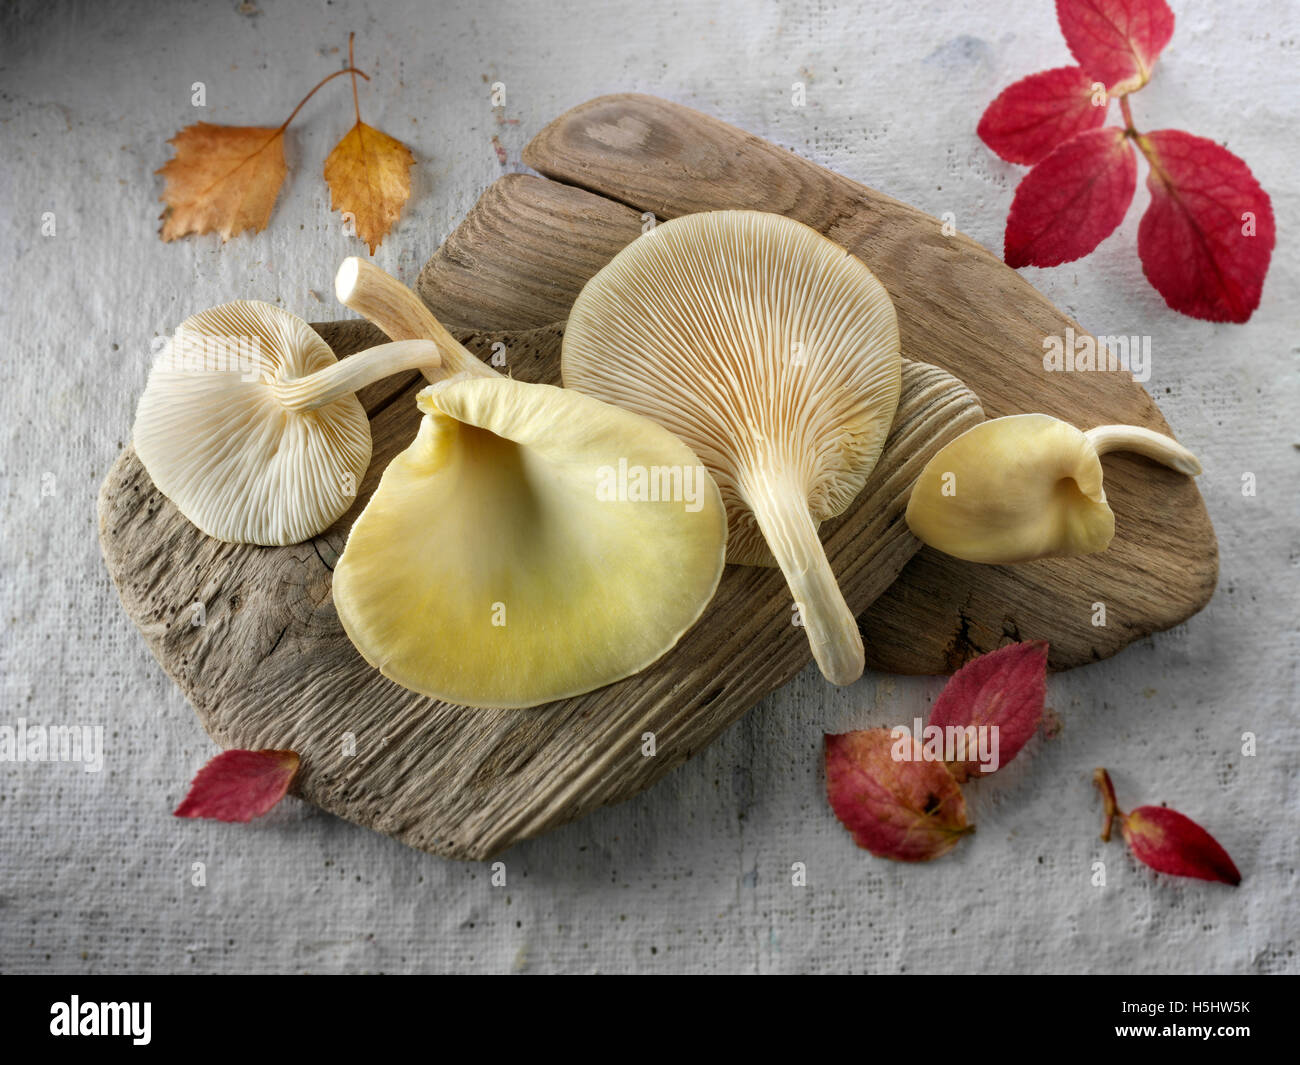 Fresh picked edible yellow or golden oyster mushrooms (Pleurotus citrinopileatus) - Stock Image